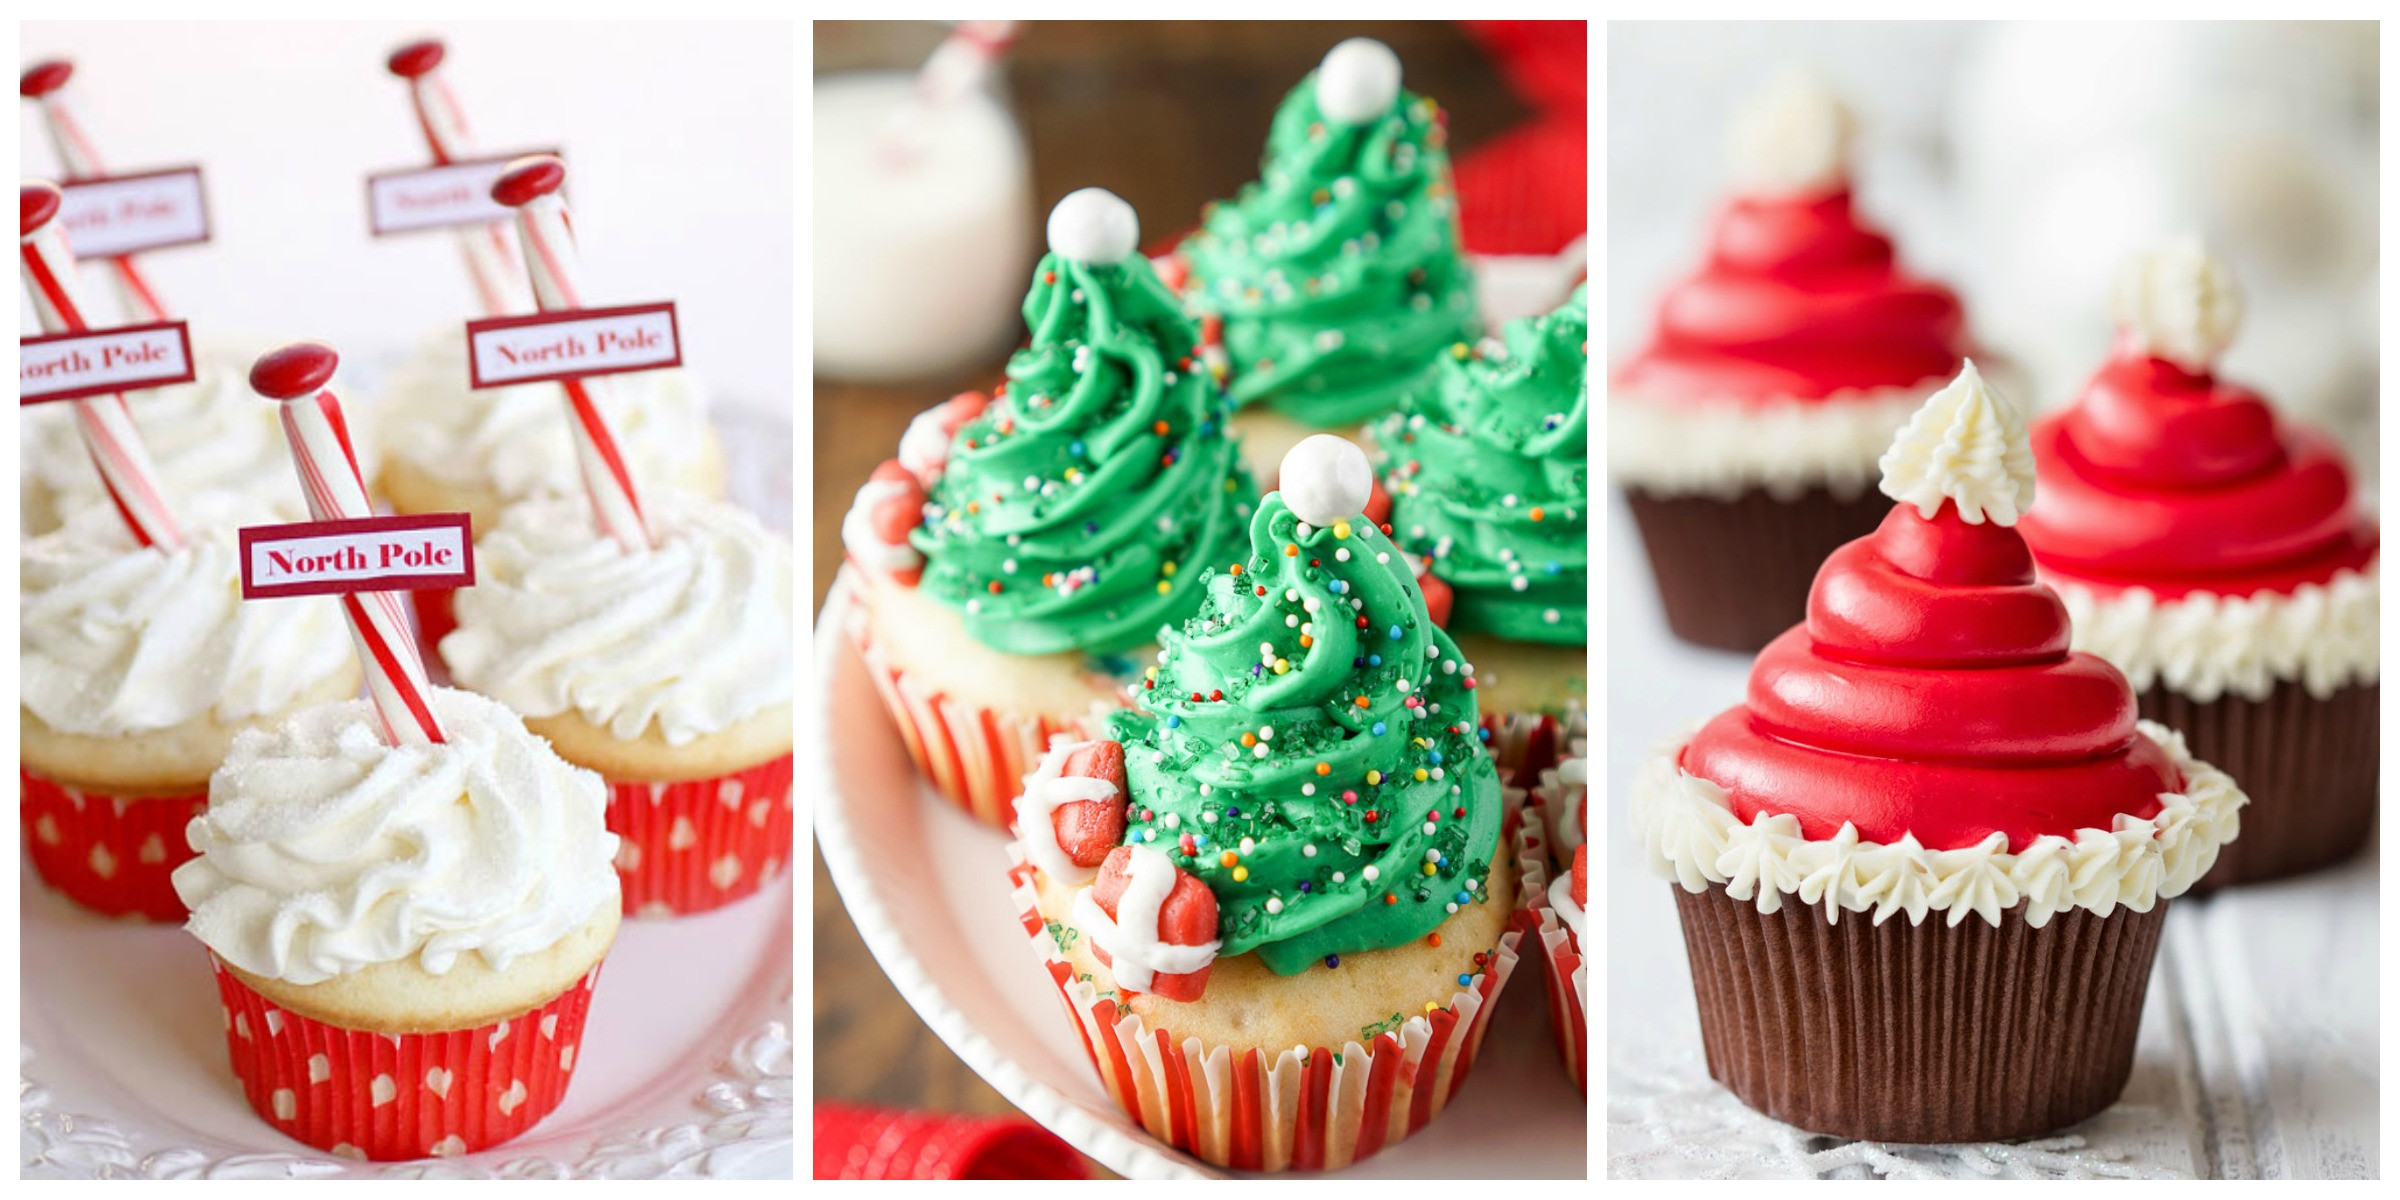 Christmas Cupcakes Ideas  19 Christmas Cupcakes Cupcake Decorating Ideas